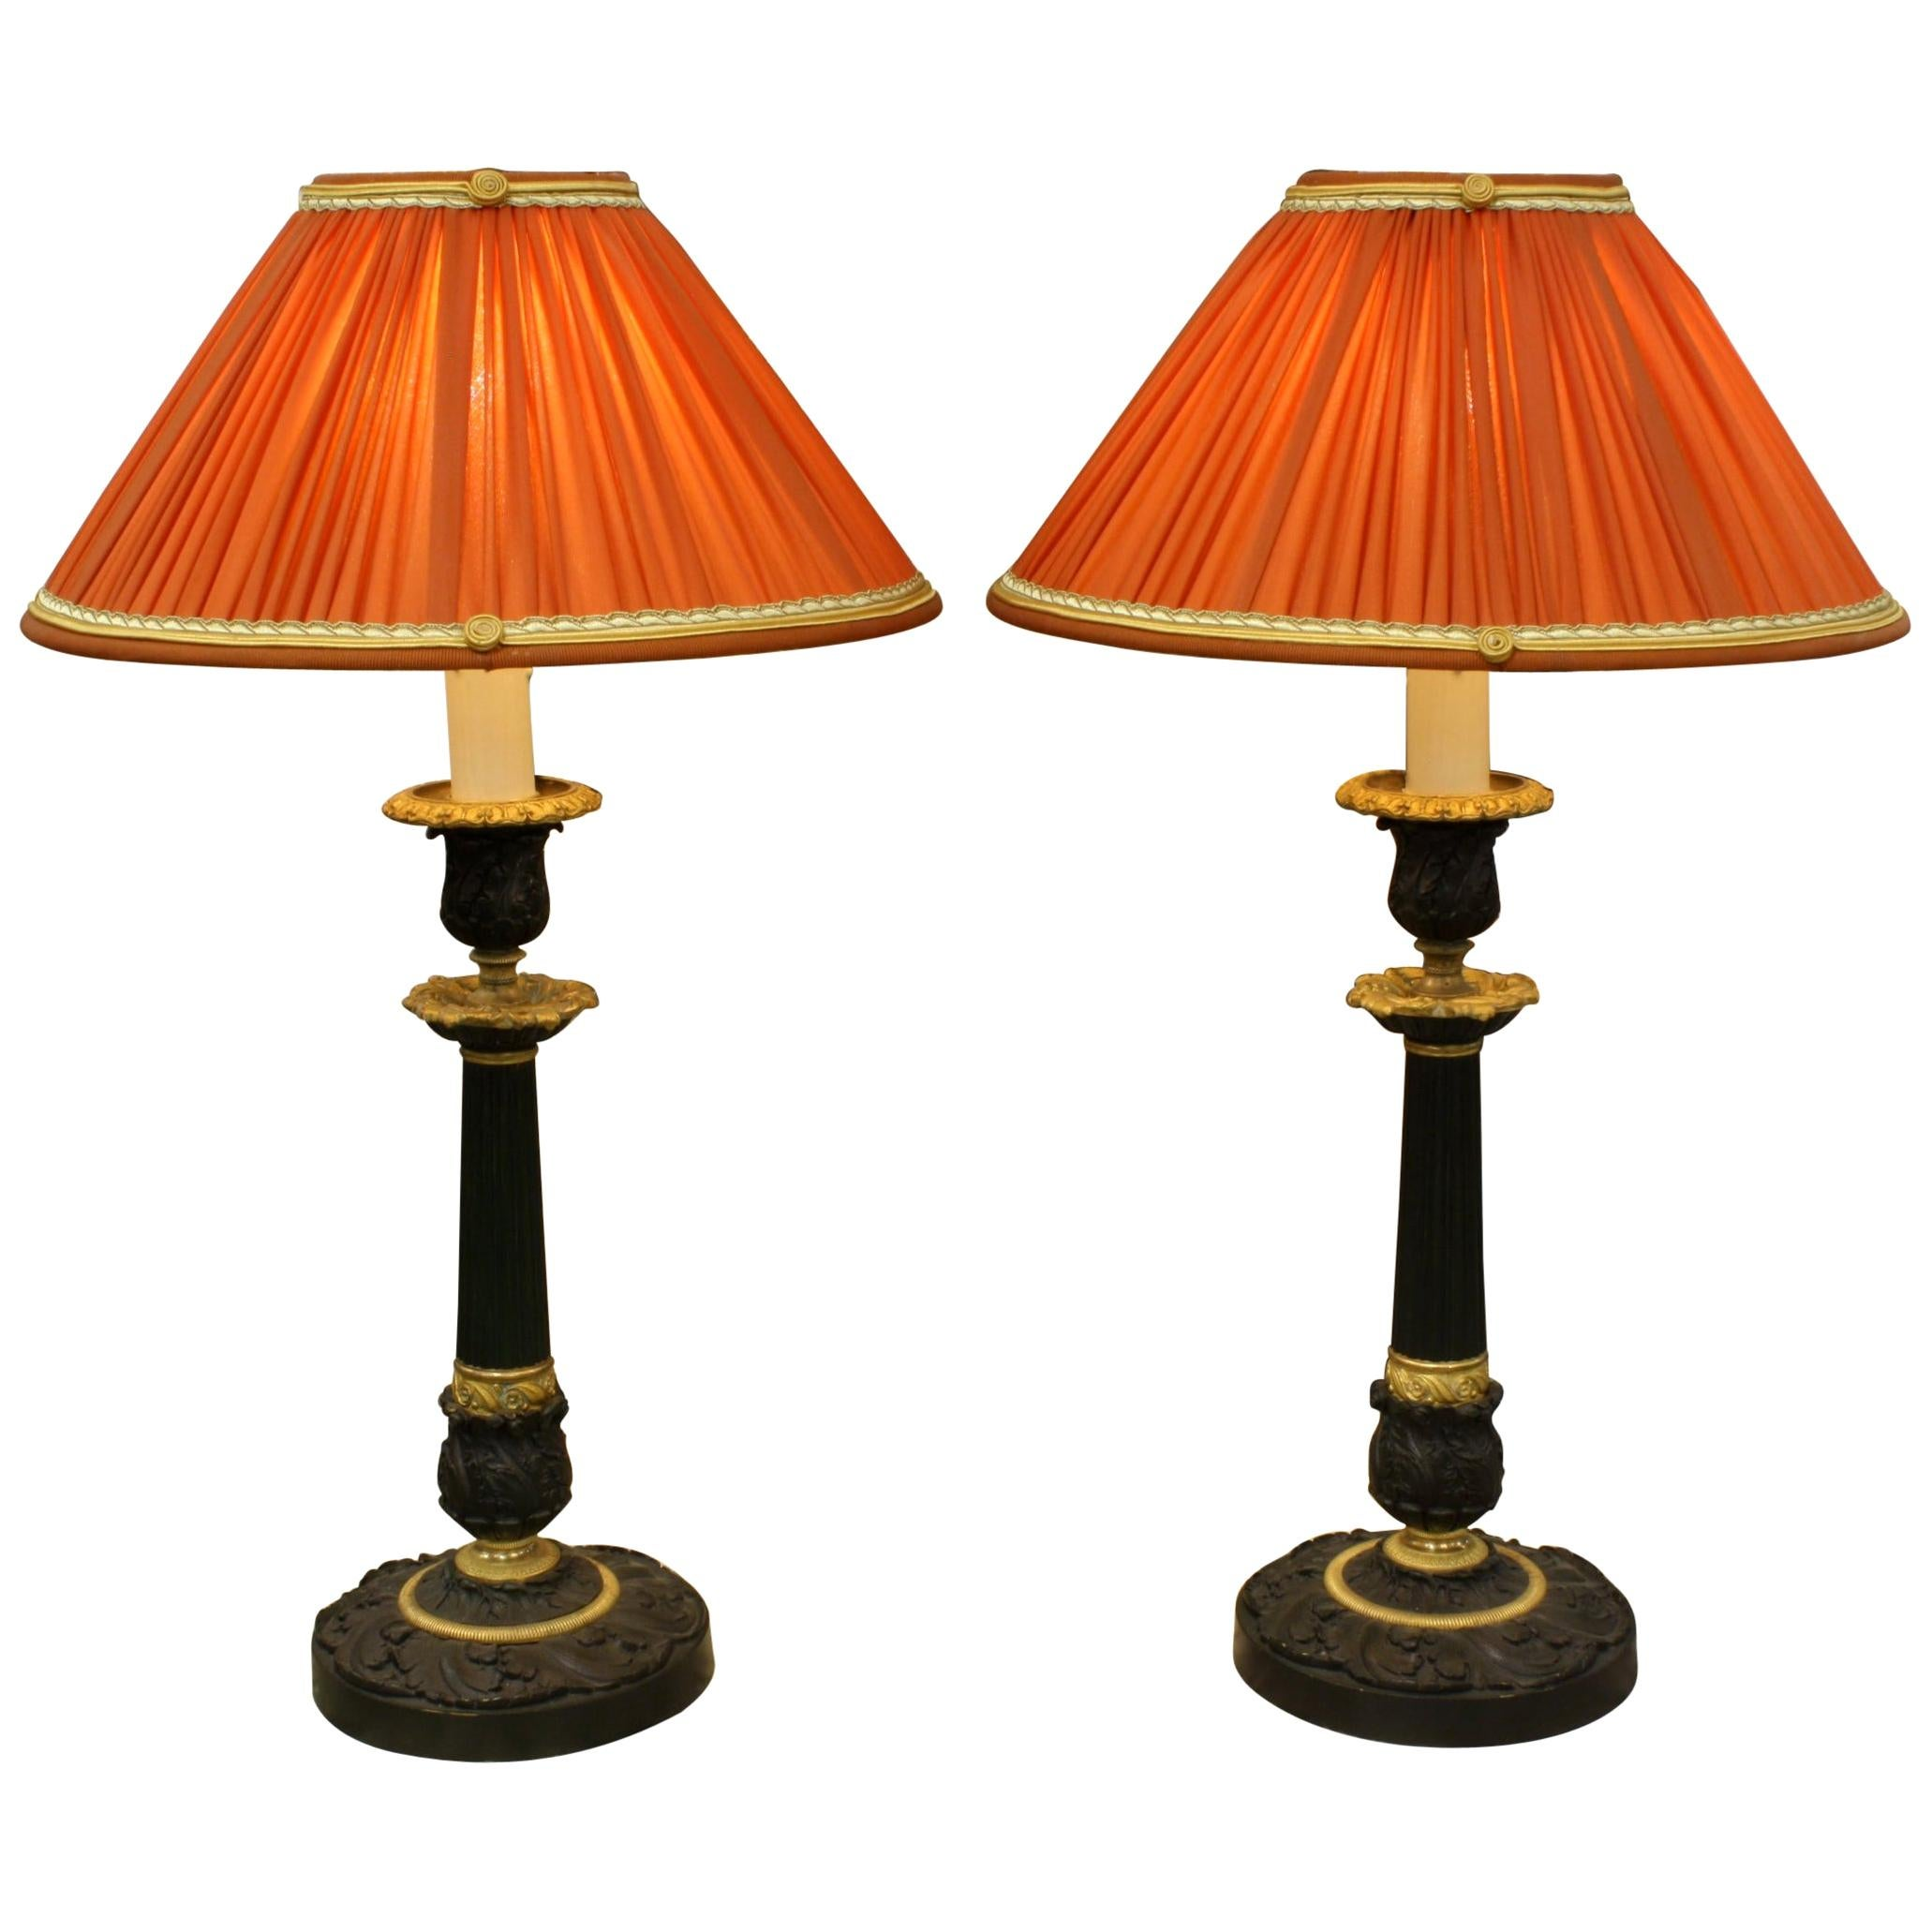 Pair of Gilt and Patinated Bronze Candlestick Lamps with Orange Silk Shades